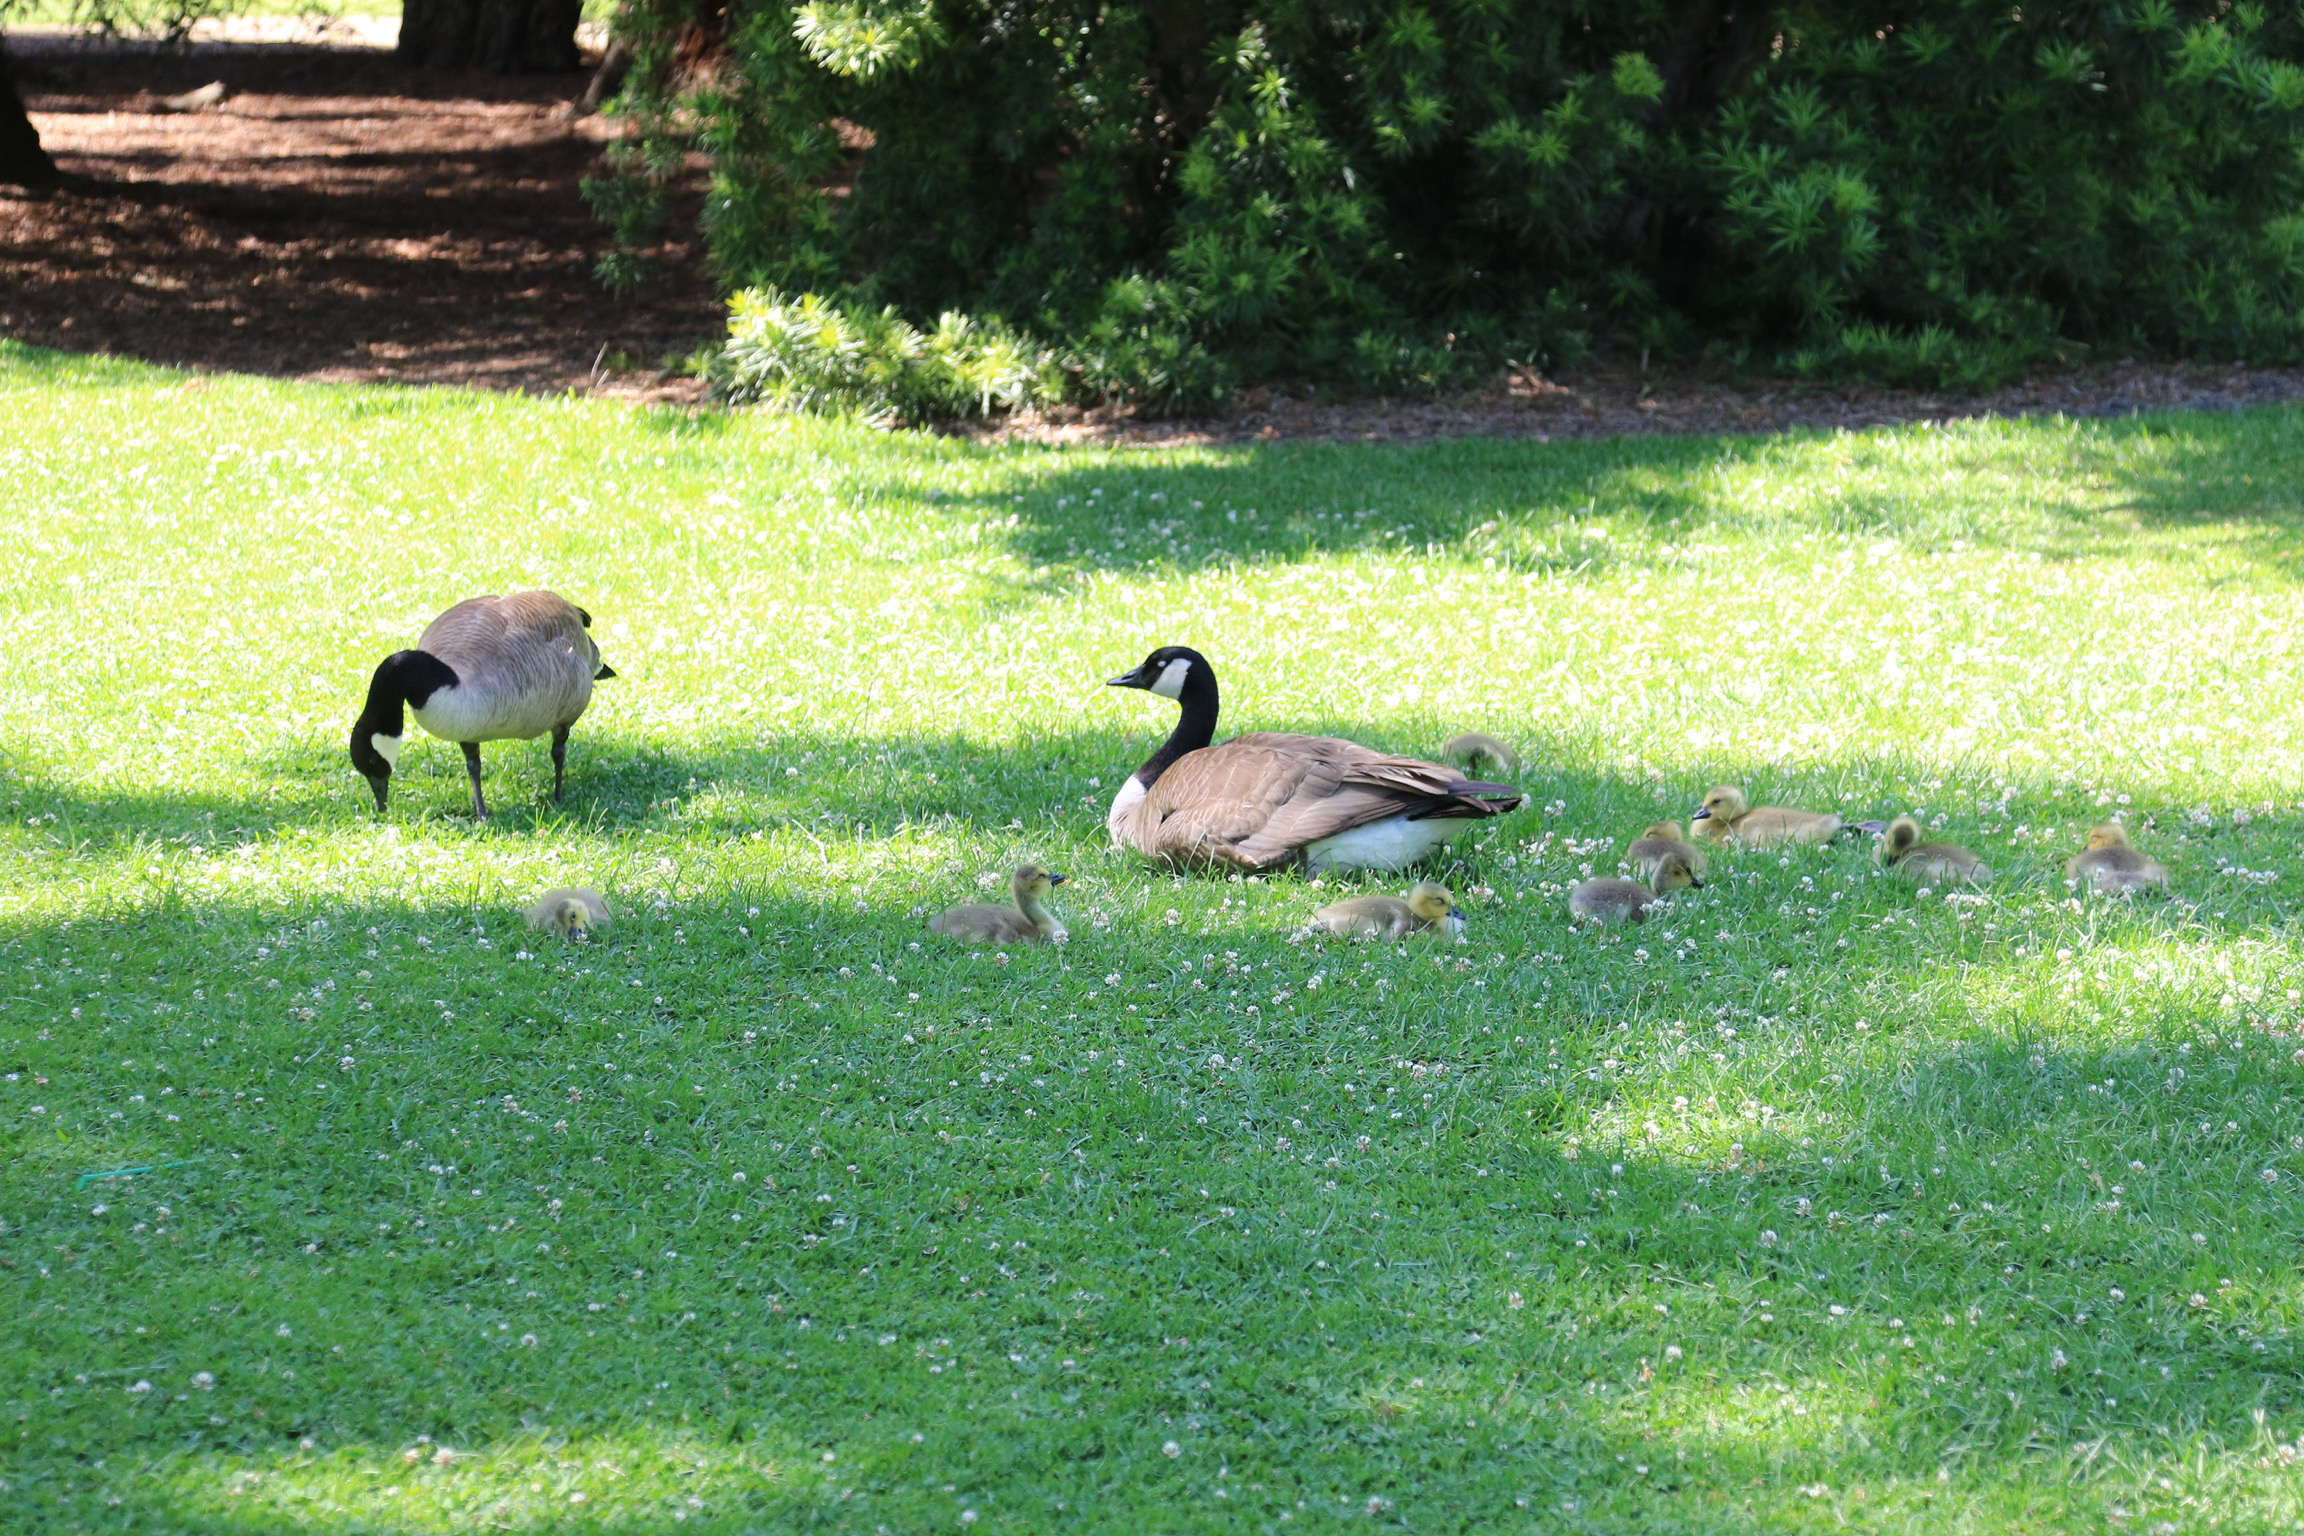 Geese and goslings at The Huntington Gardens, Pasadena